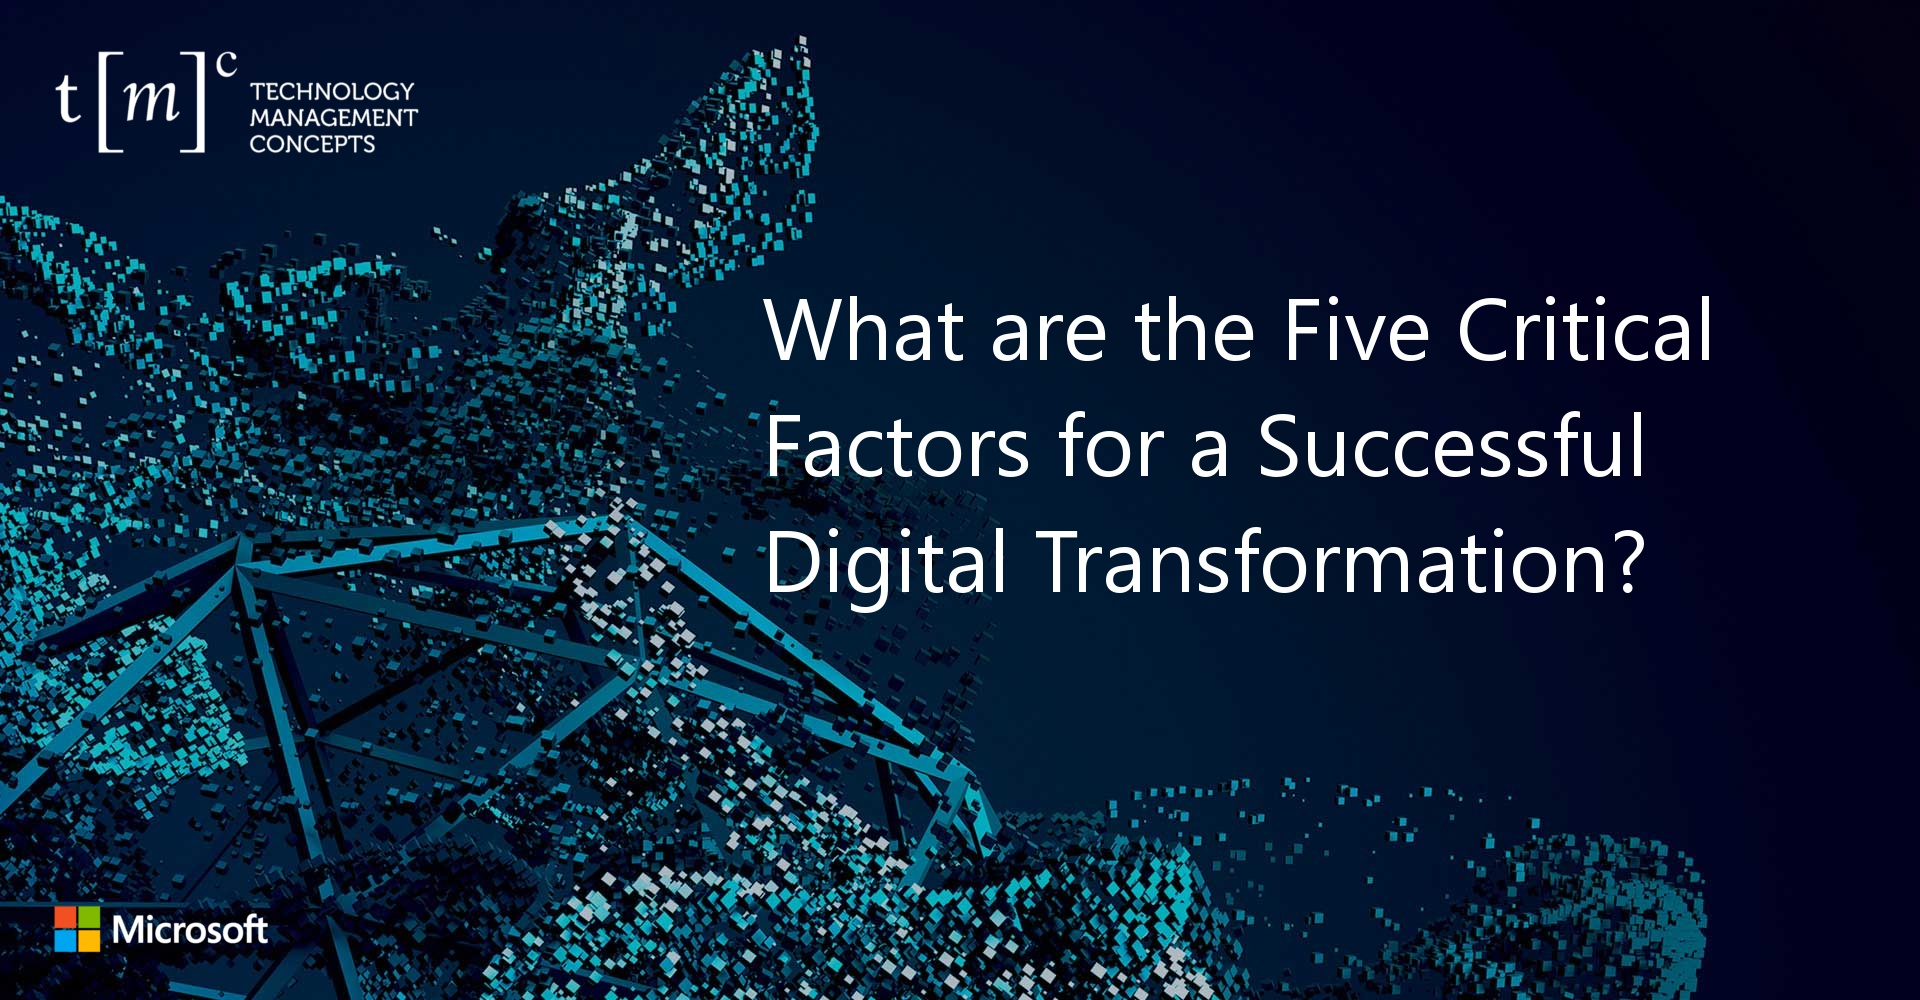 The-Five-Critical-Factors-for-a-Successful-Digital-Transformation-featured-image